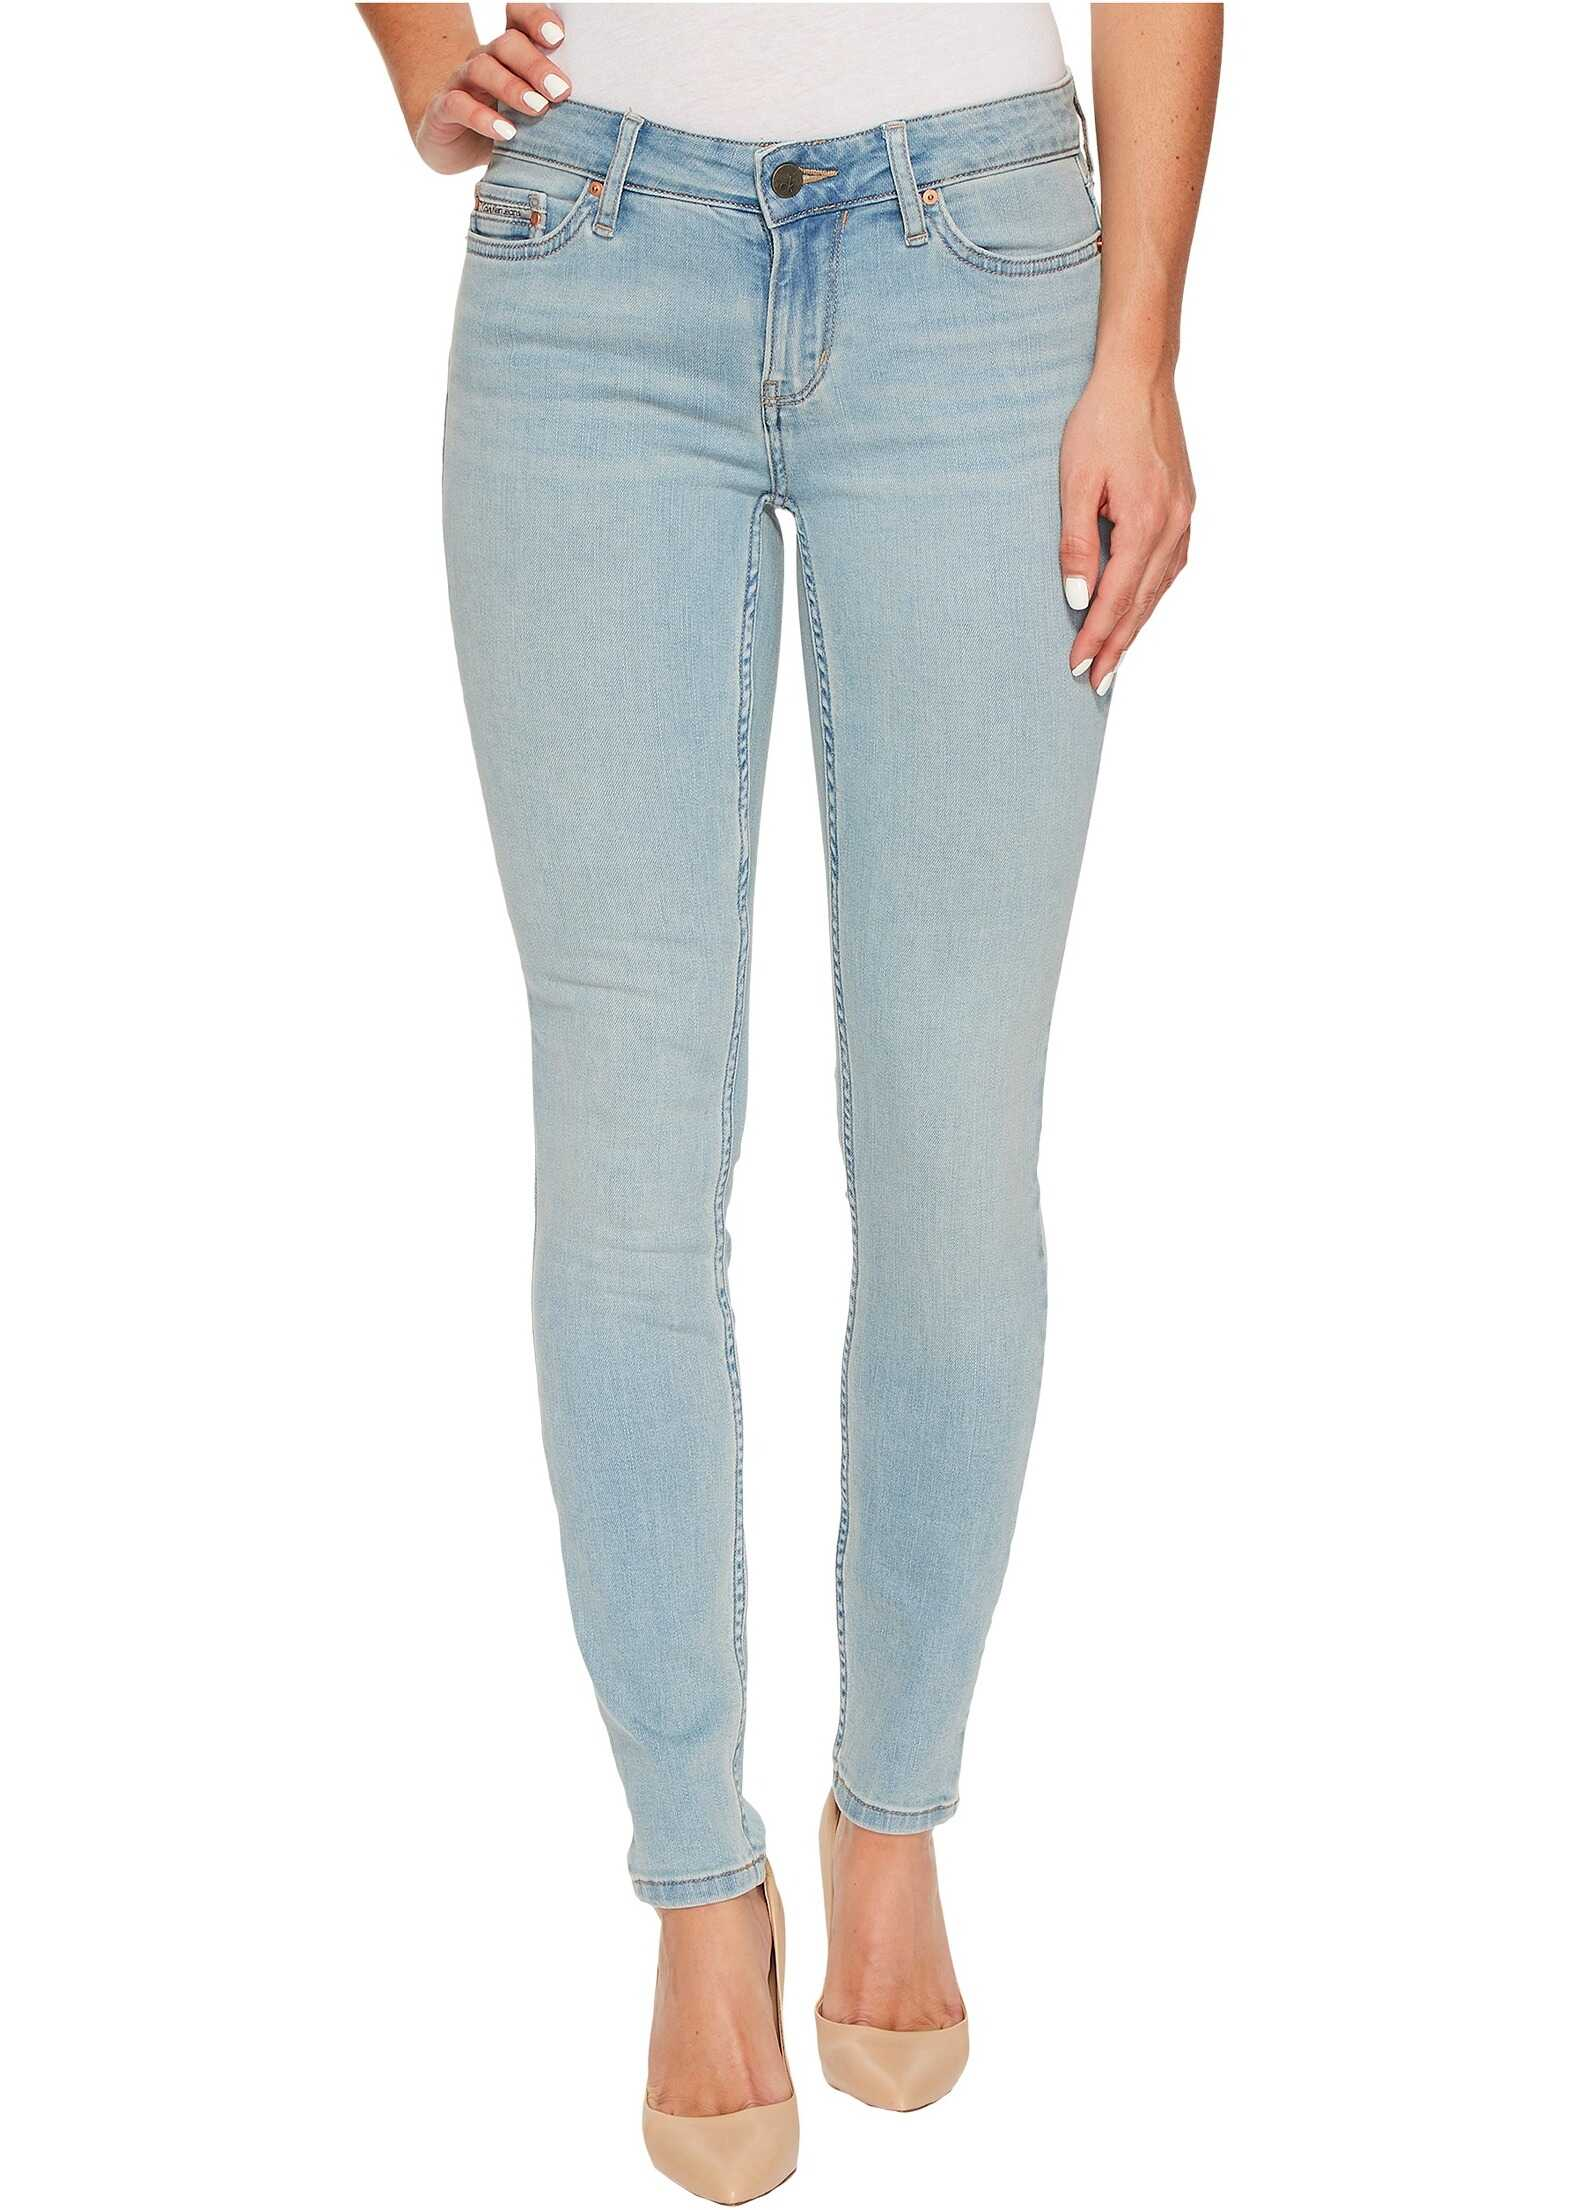 Calvin Klein Jeans Legging Jeans in 90s Light Wash 90's Light